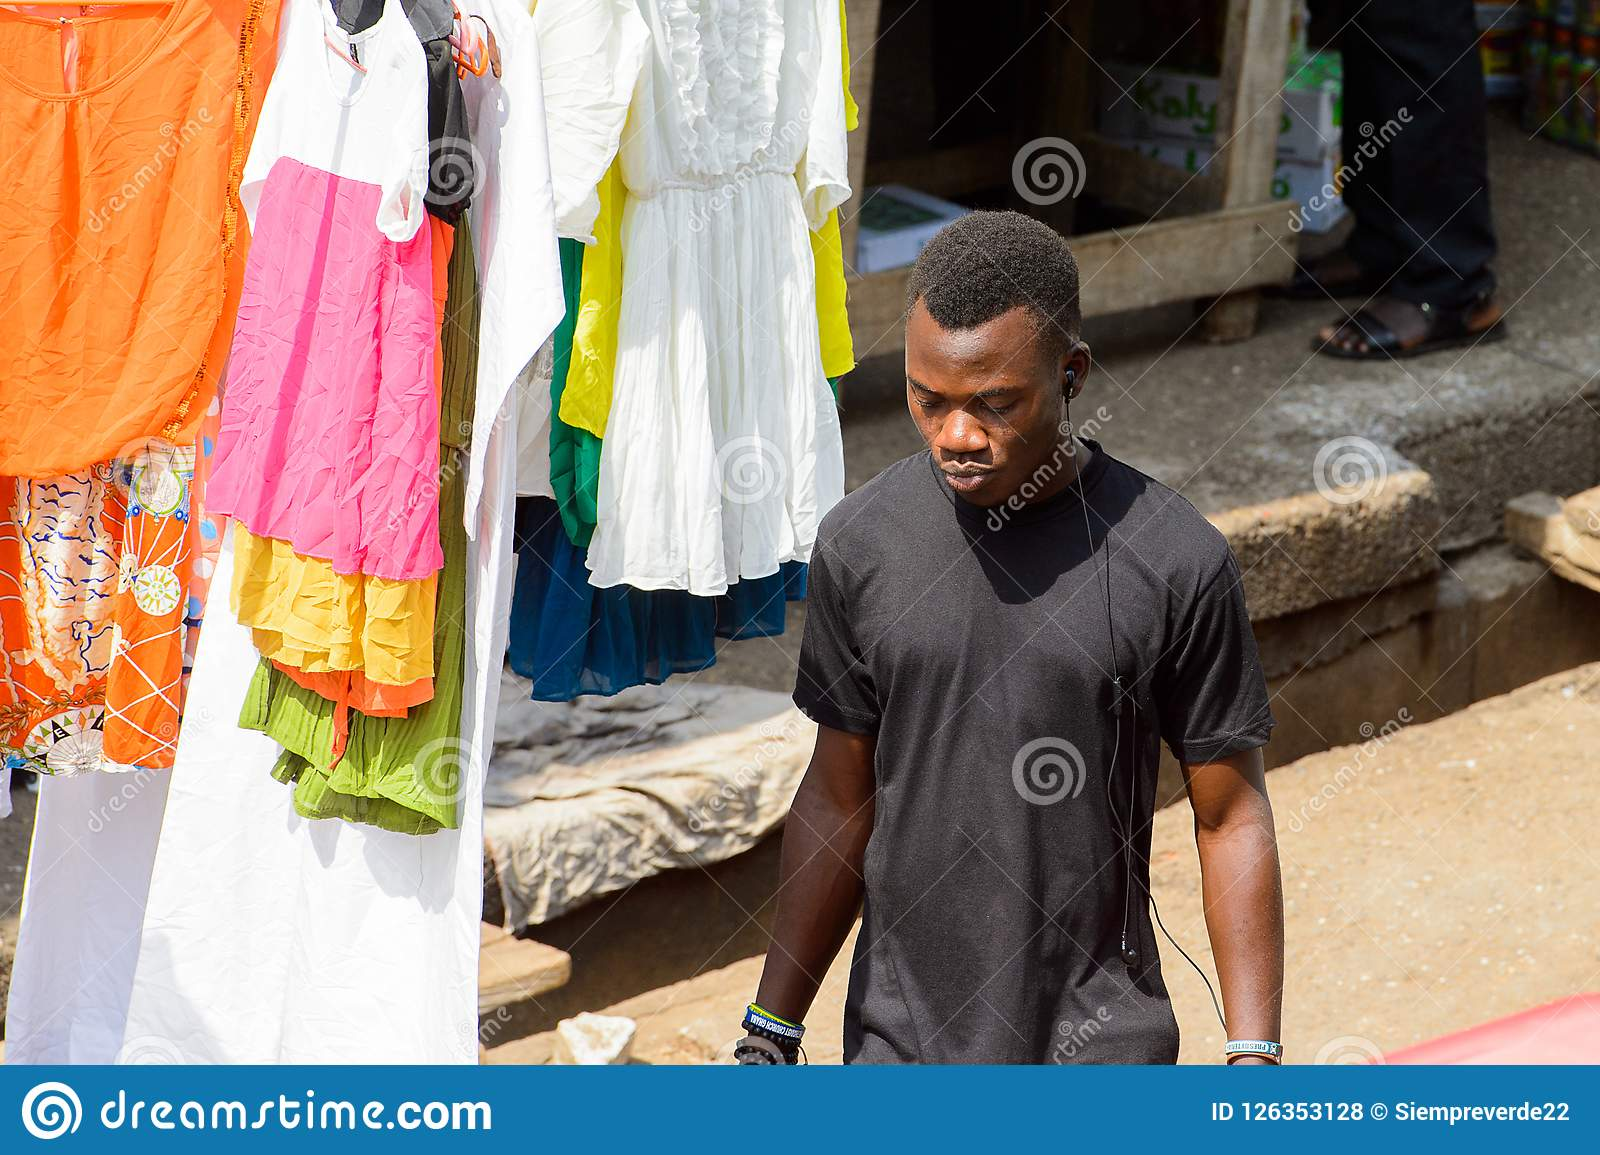 Unidentified Ghanaian Man In Black Shirt Listens To Music